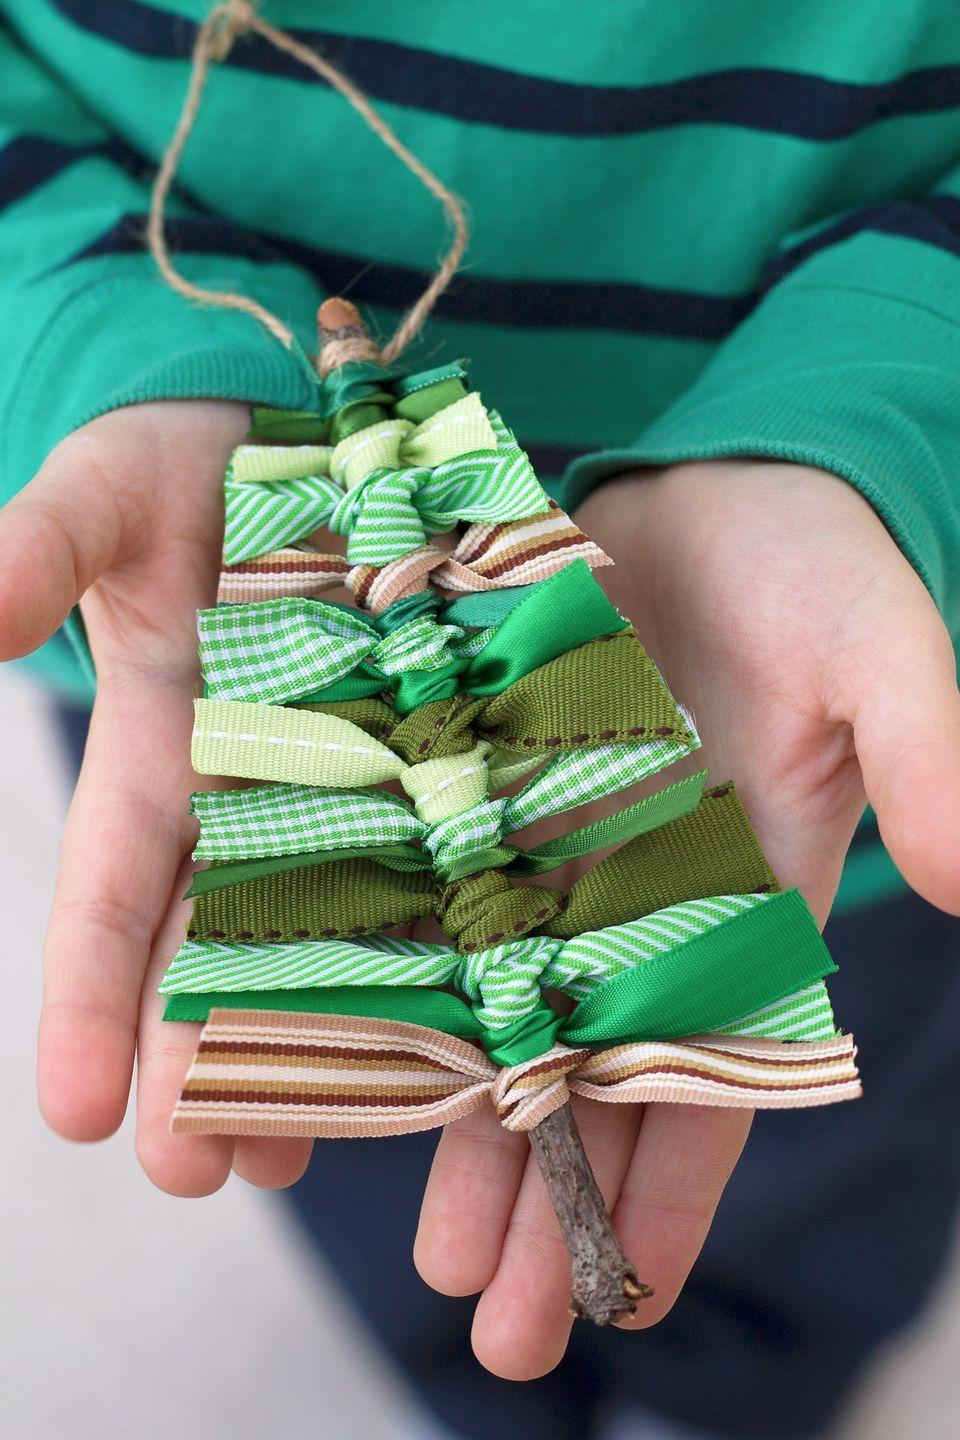 "<p>Pair leftover ribbon or fabric scraps with some twine and a twig sourced from your yard for this easy Christmas ornament. </p><p><strong>Get the tutorial at <a href=""https://www.firefliesandmudpies.com/scrap-ribbon-tree-ornaments/"" rel=""nofollow noopener"" target=""_blank"" data-ylk=""slk:Fireflies and Mud Pies"" class=""link rapid-noclick-resp"">Fireflies and Mud Pies</a>.</strong></p><p><a class=""link rapid-noclick-resp"" href=""https://www.amazon.com/s?k=green+ribbon&i=arts-crafts&ref=nb_sb_noss_2&tag=syn-yahoo-20&ascsubtag=%5Bartid%7C10050.g.1070%5Bsrc%7Cyahoo-us"" rel=""nofollow noopener"" target=""_blank"" data-ylk=""slk:SHOP GREEN RIBBON SET"">SHOP GREEN RIBBON SET</a></p>"